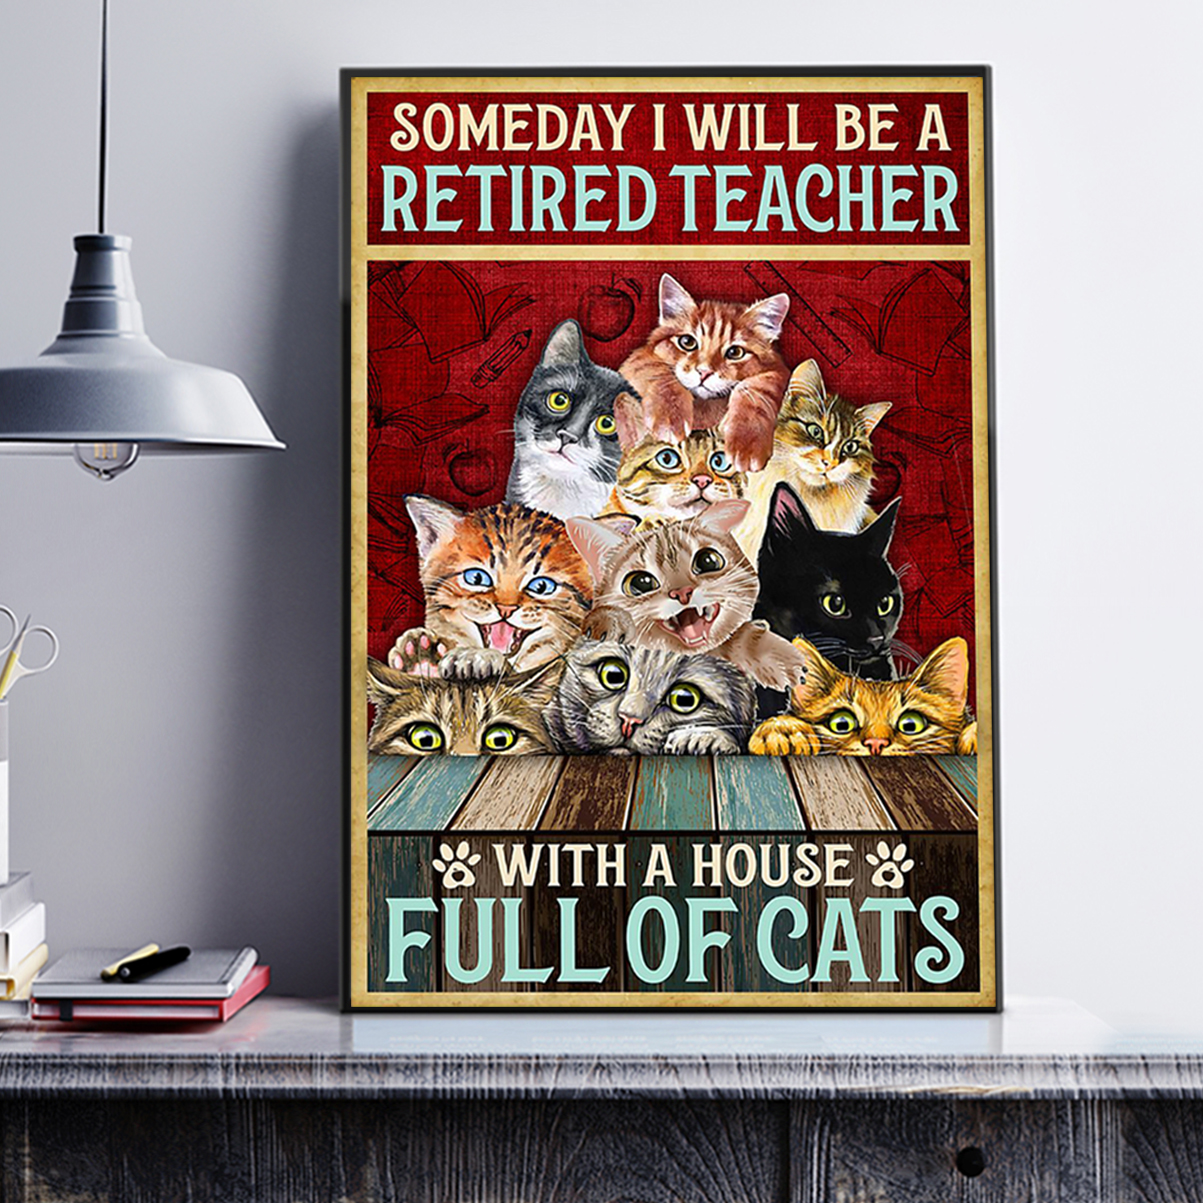 Someday I will be a retired teacher with a house full of cats poster A3